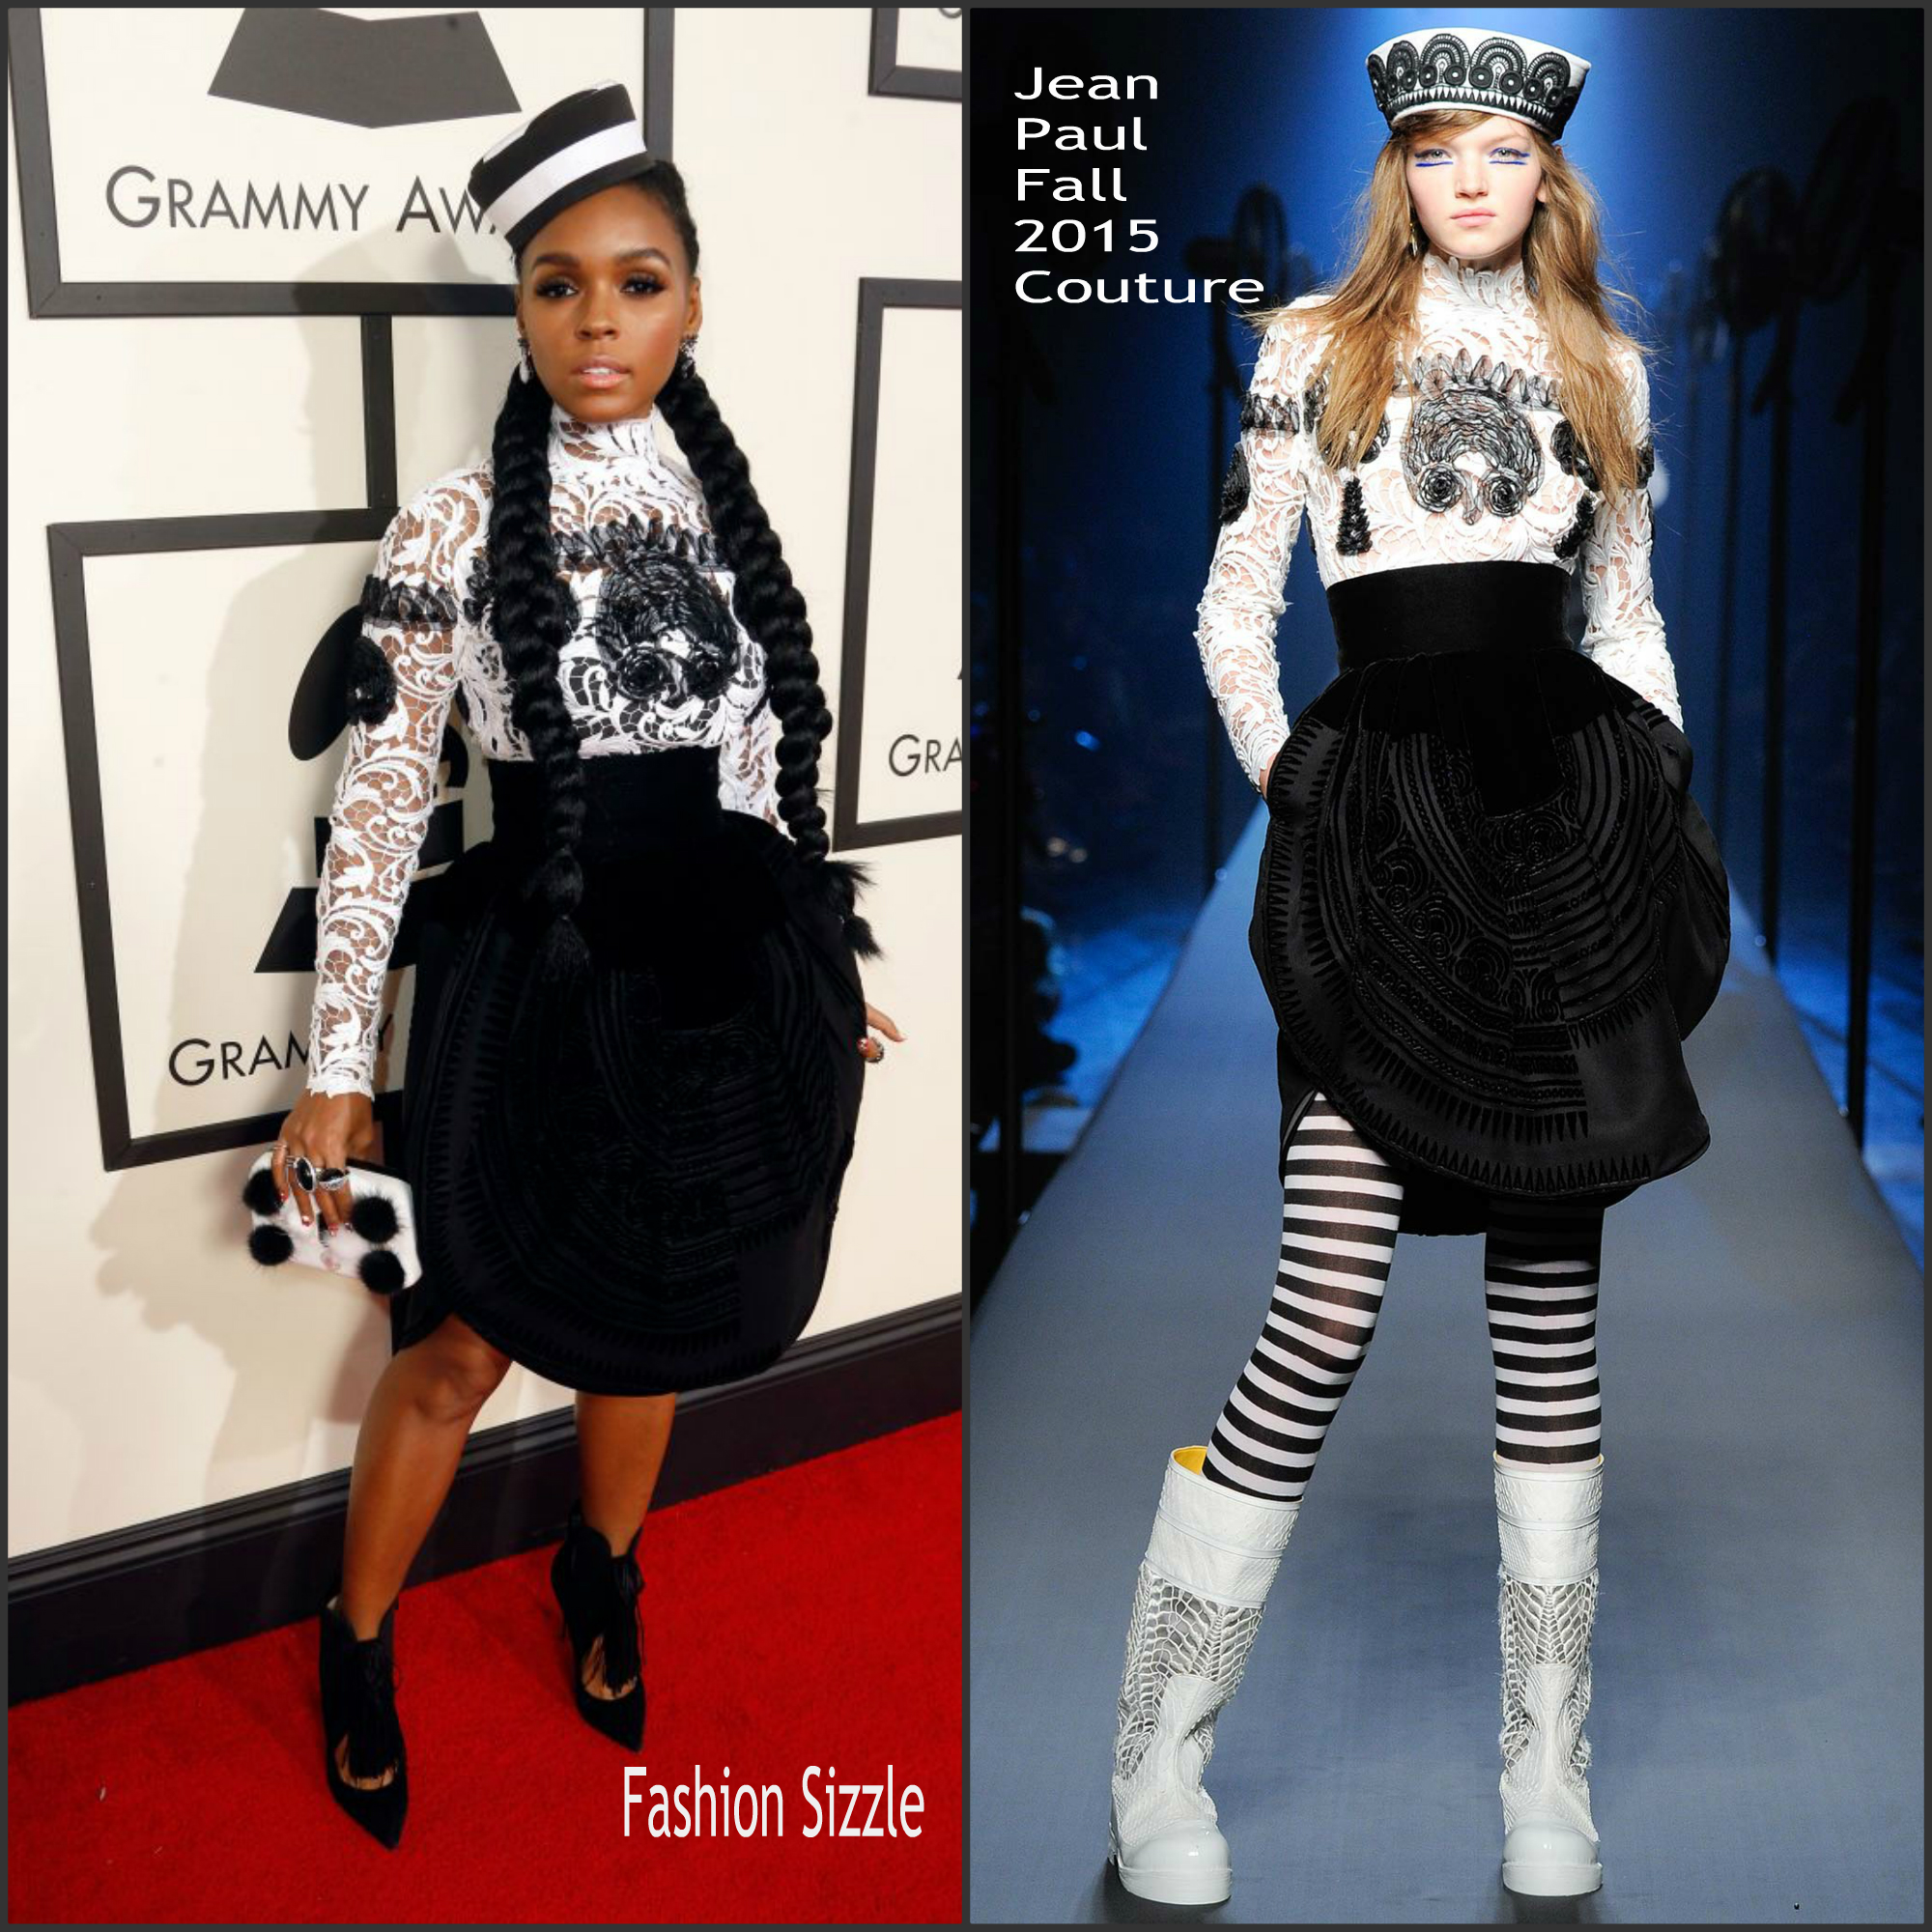 janelle-monae-in-jean-paul-gaultier-couture-2016-grammy-awards